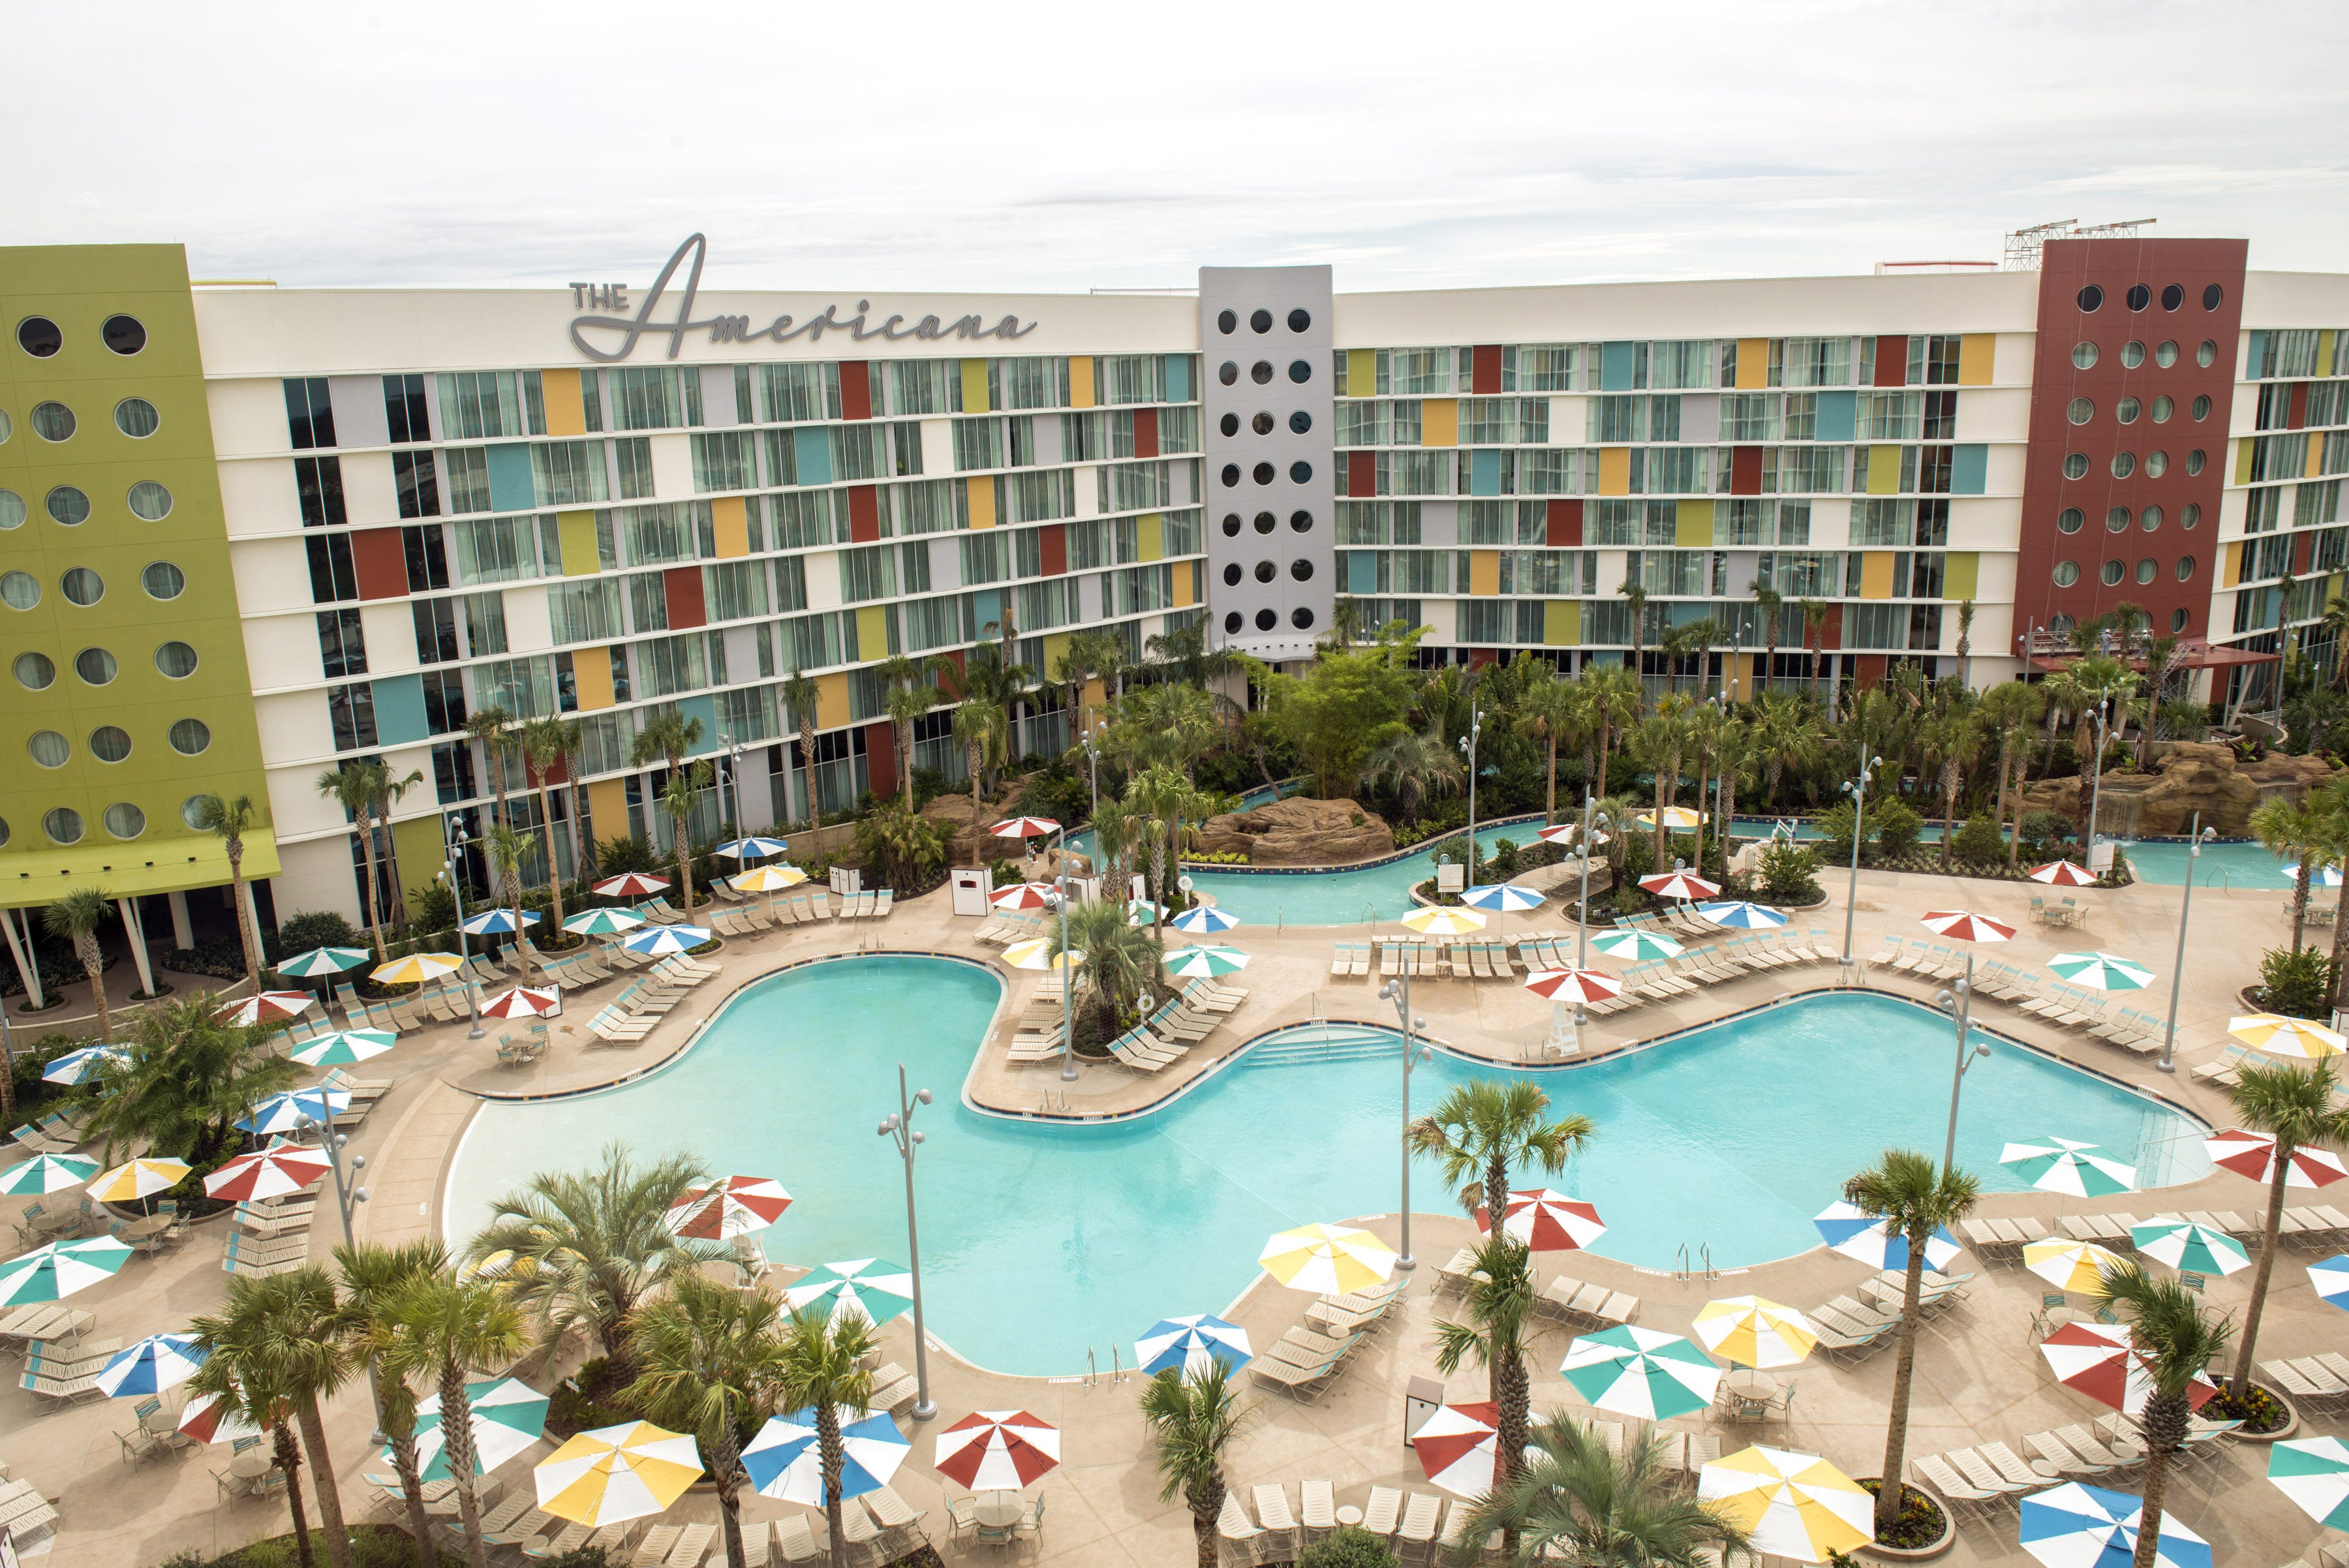 Cabana Bay Beach Resort Quieter Pool  Image courtesy of Universal Orlando Resort